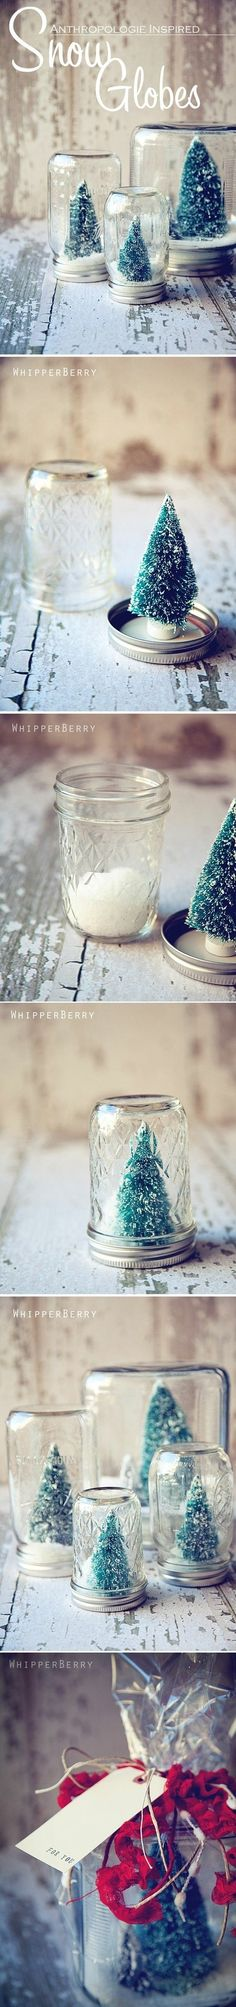 Make snow globes out of jars.                                                                                                                                                                                 More